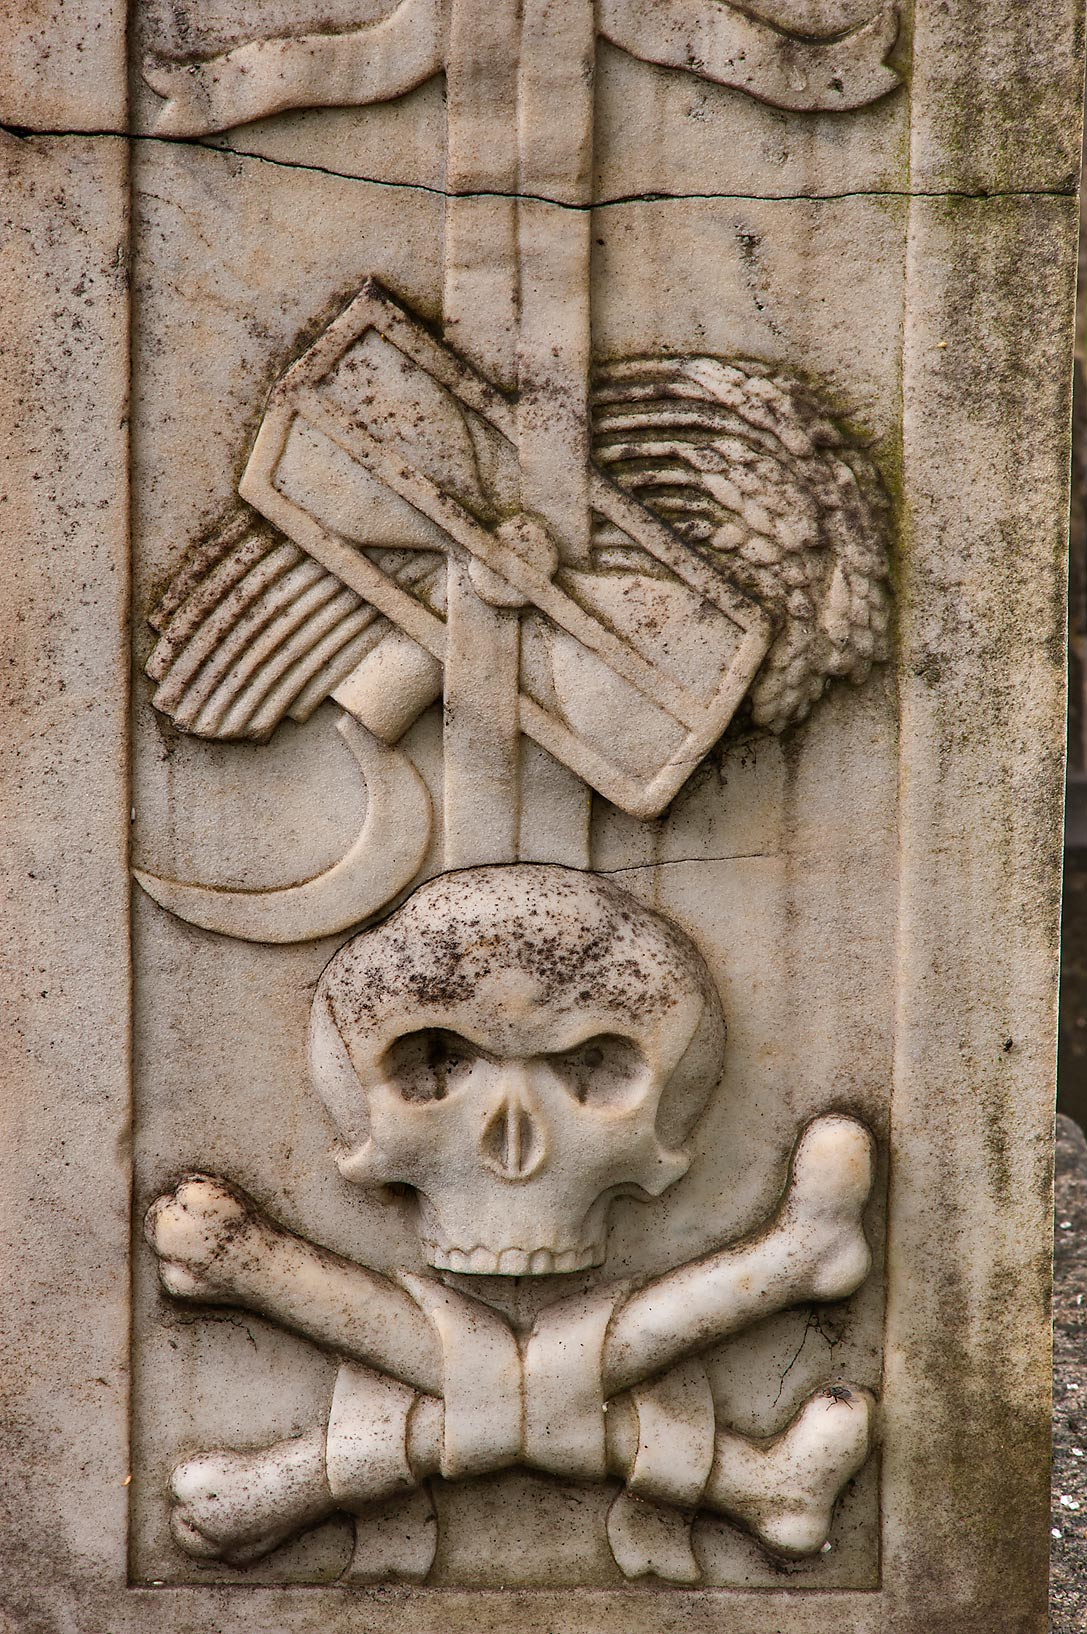 Marble skull and bones embossed on a tomb in...Cemetery). St.Petersburg, Russia